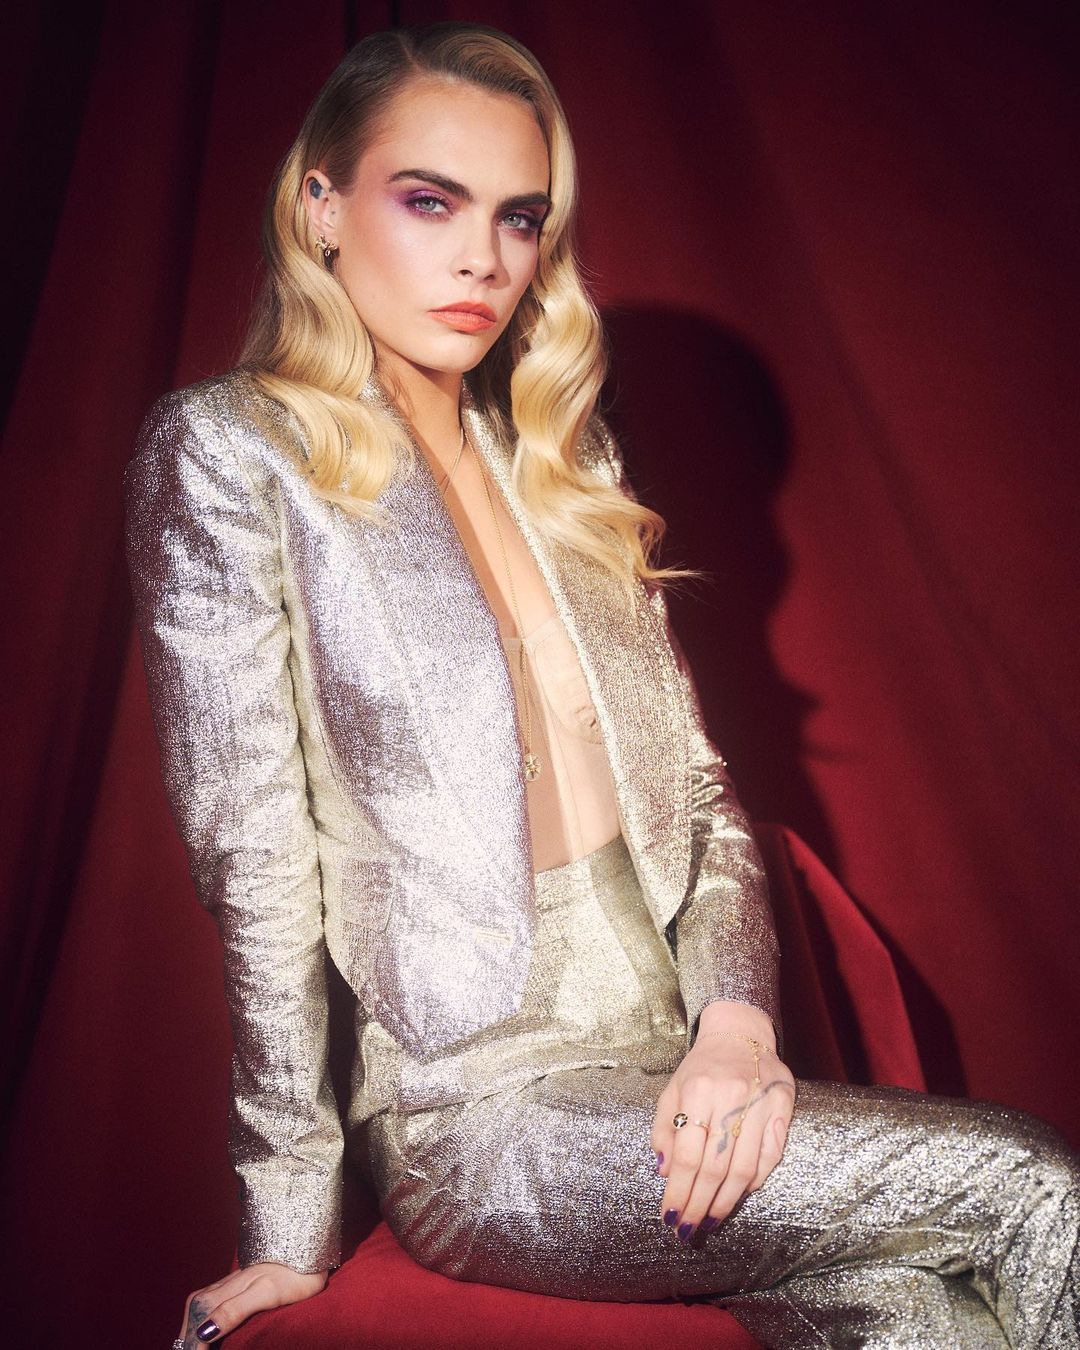 Cara Delevingne Sells Intimate NFT Video for Charity - Cara Delevingne NFT Nude Video NFT